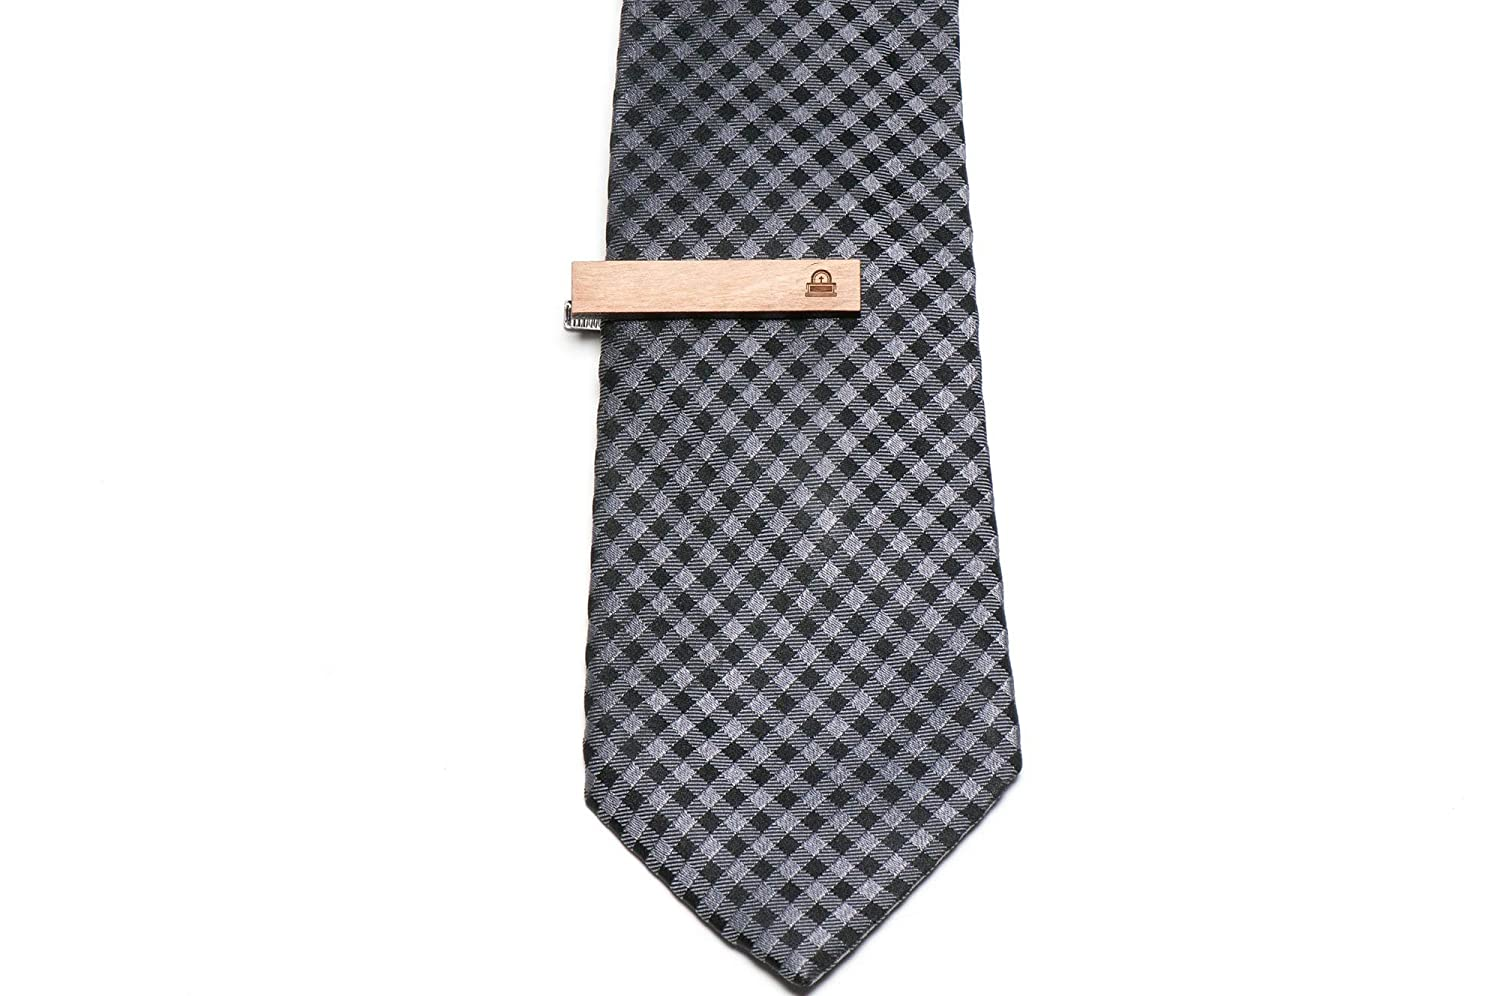 Wooden Accessories Company Wooden Tie Clips with Laser Engraved Altar Design Cherry Wood Tie Bar Engraved in The USA